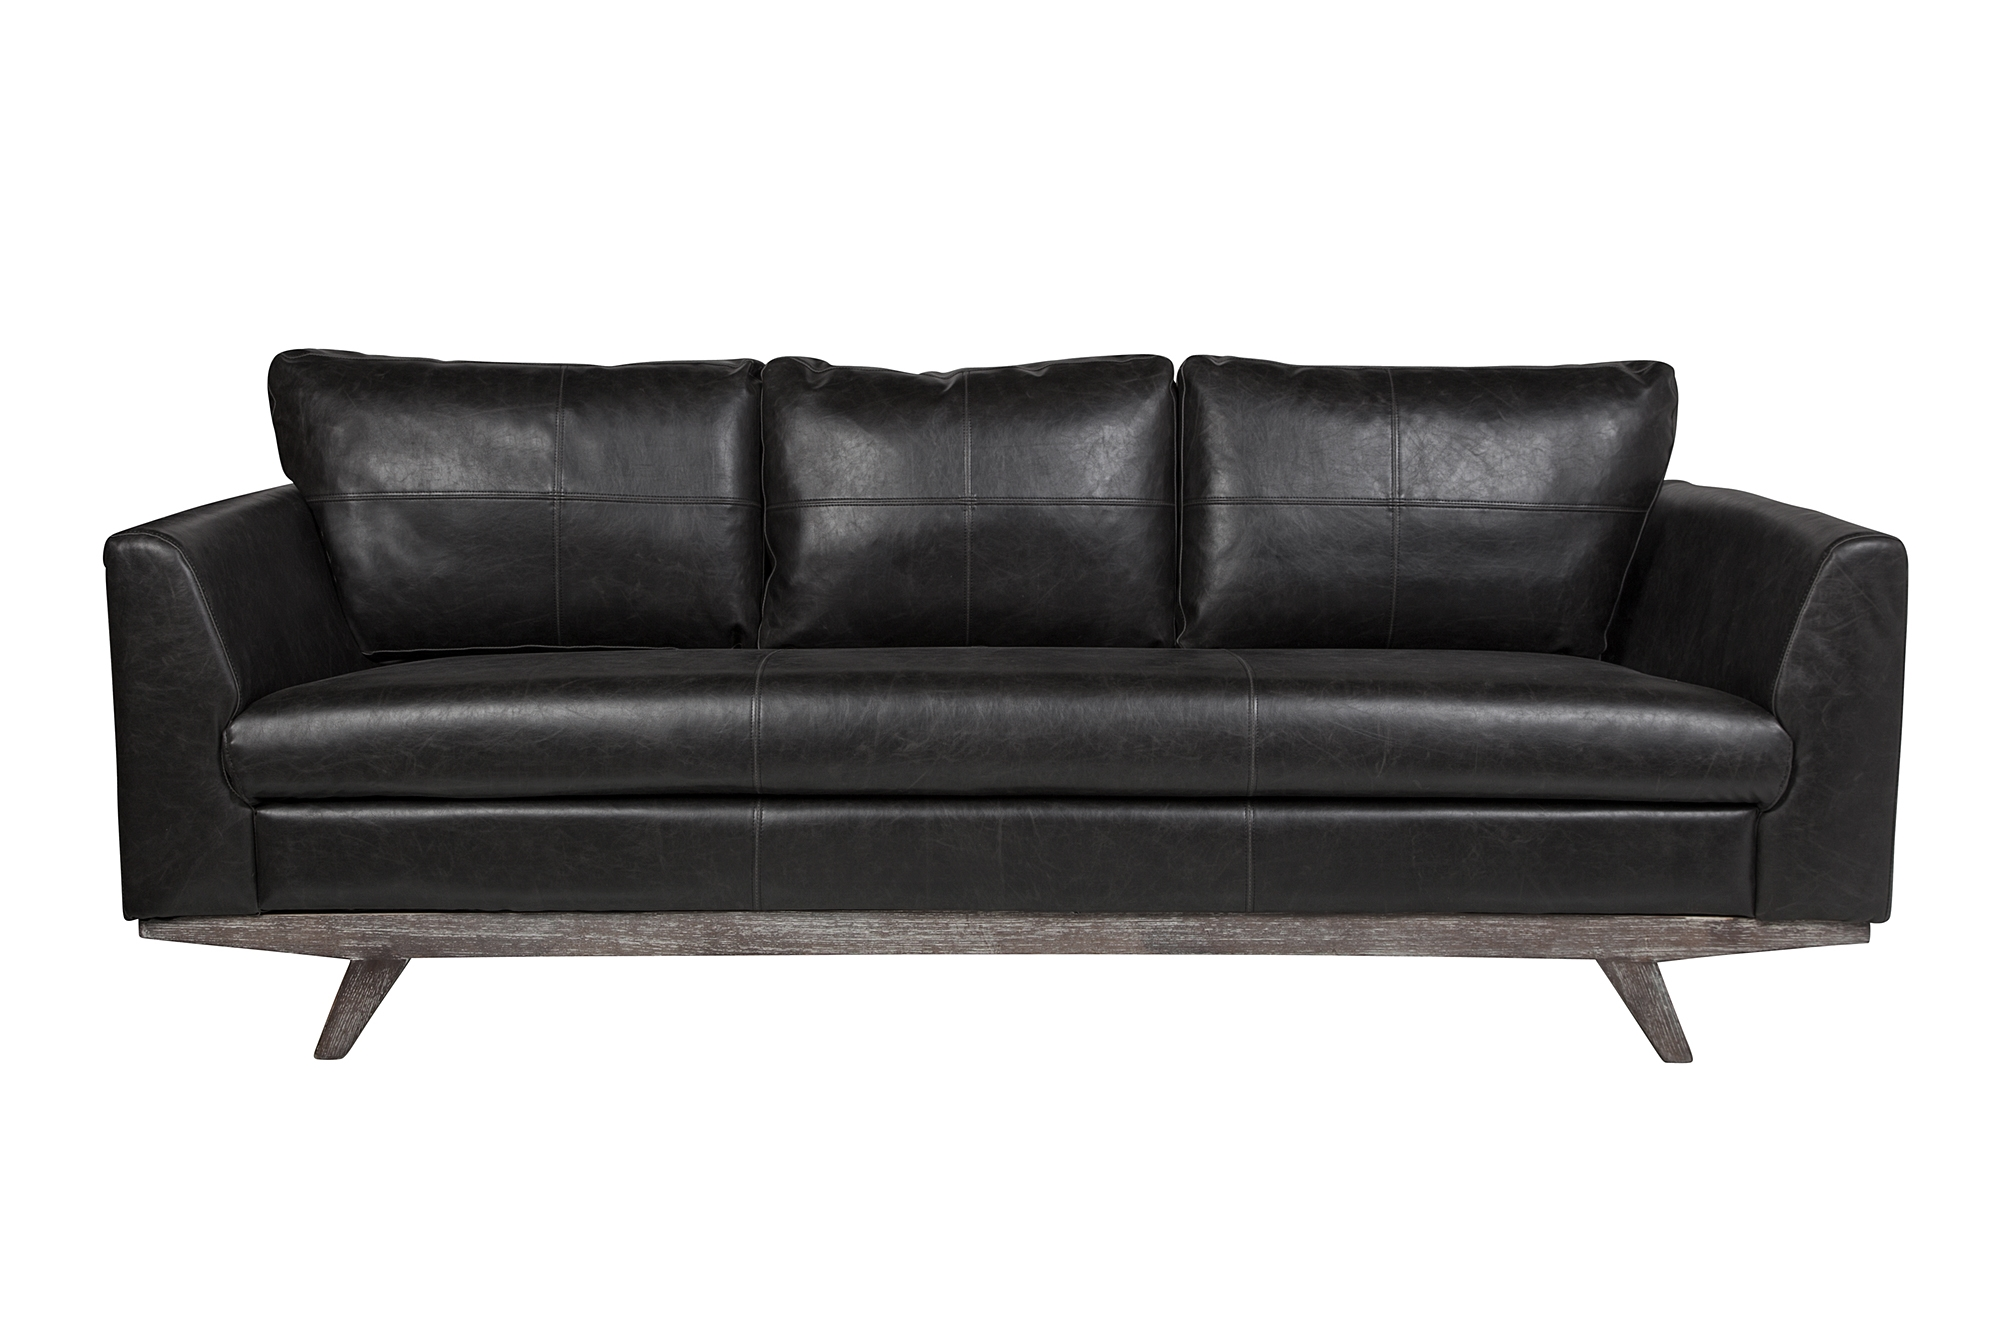 Maxwell 3 Seater Leather Sofa in Distressed Biker Black Leather